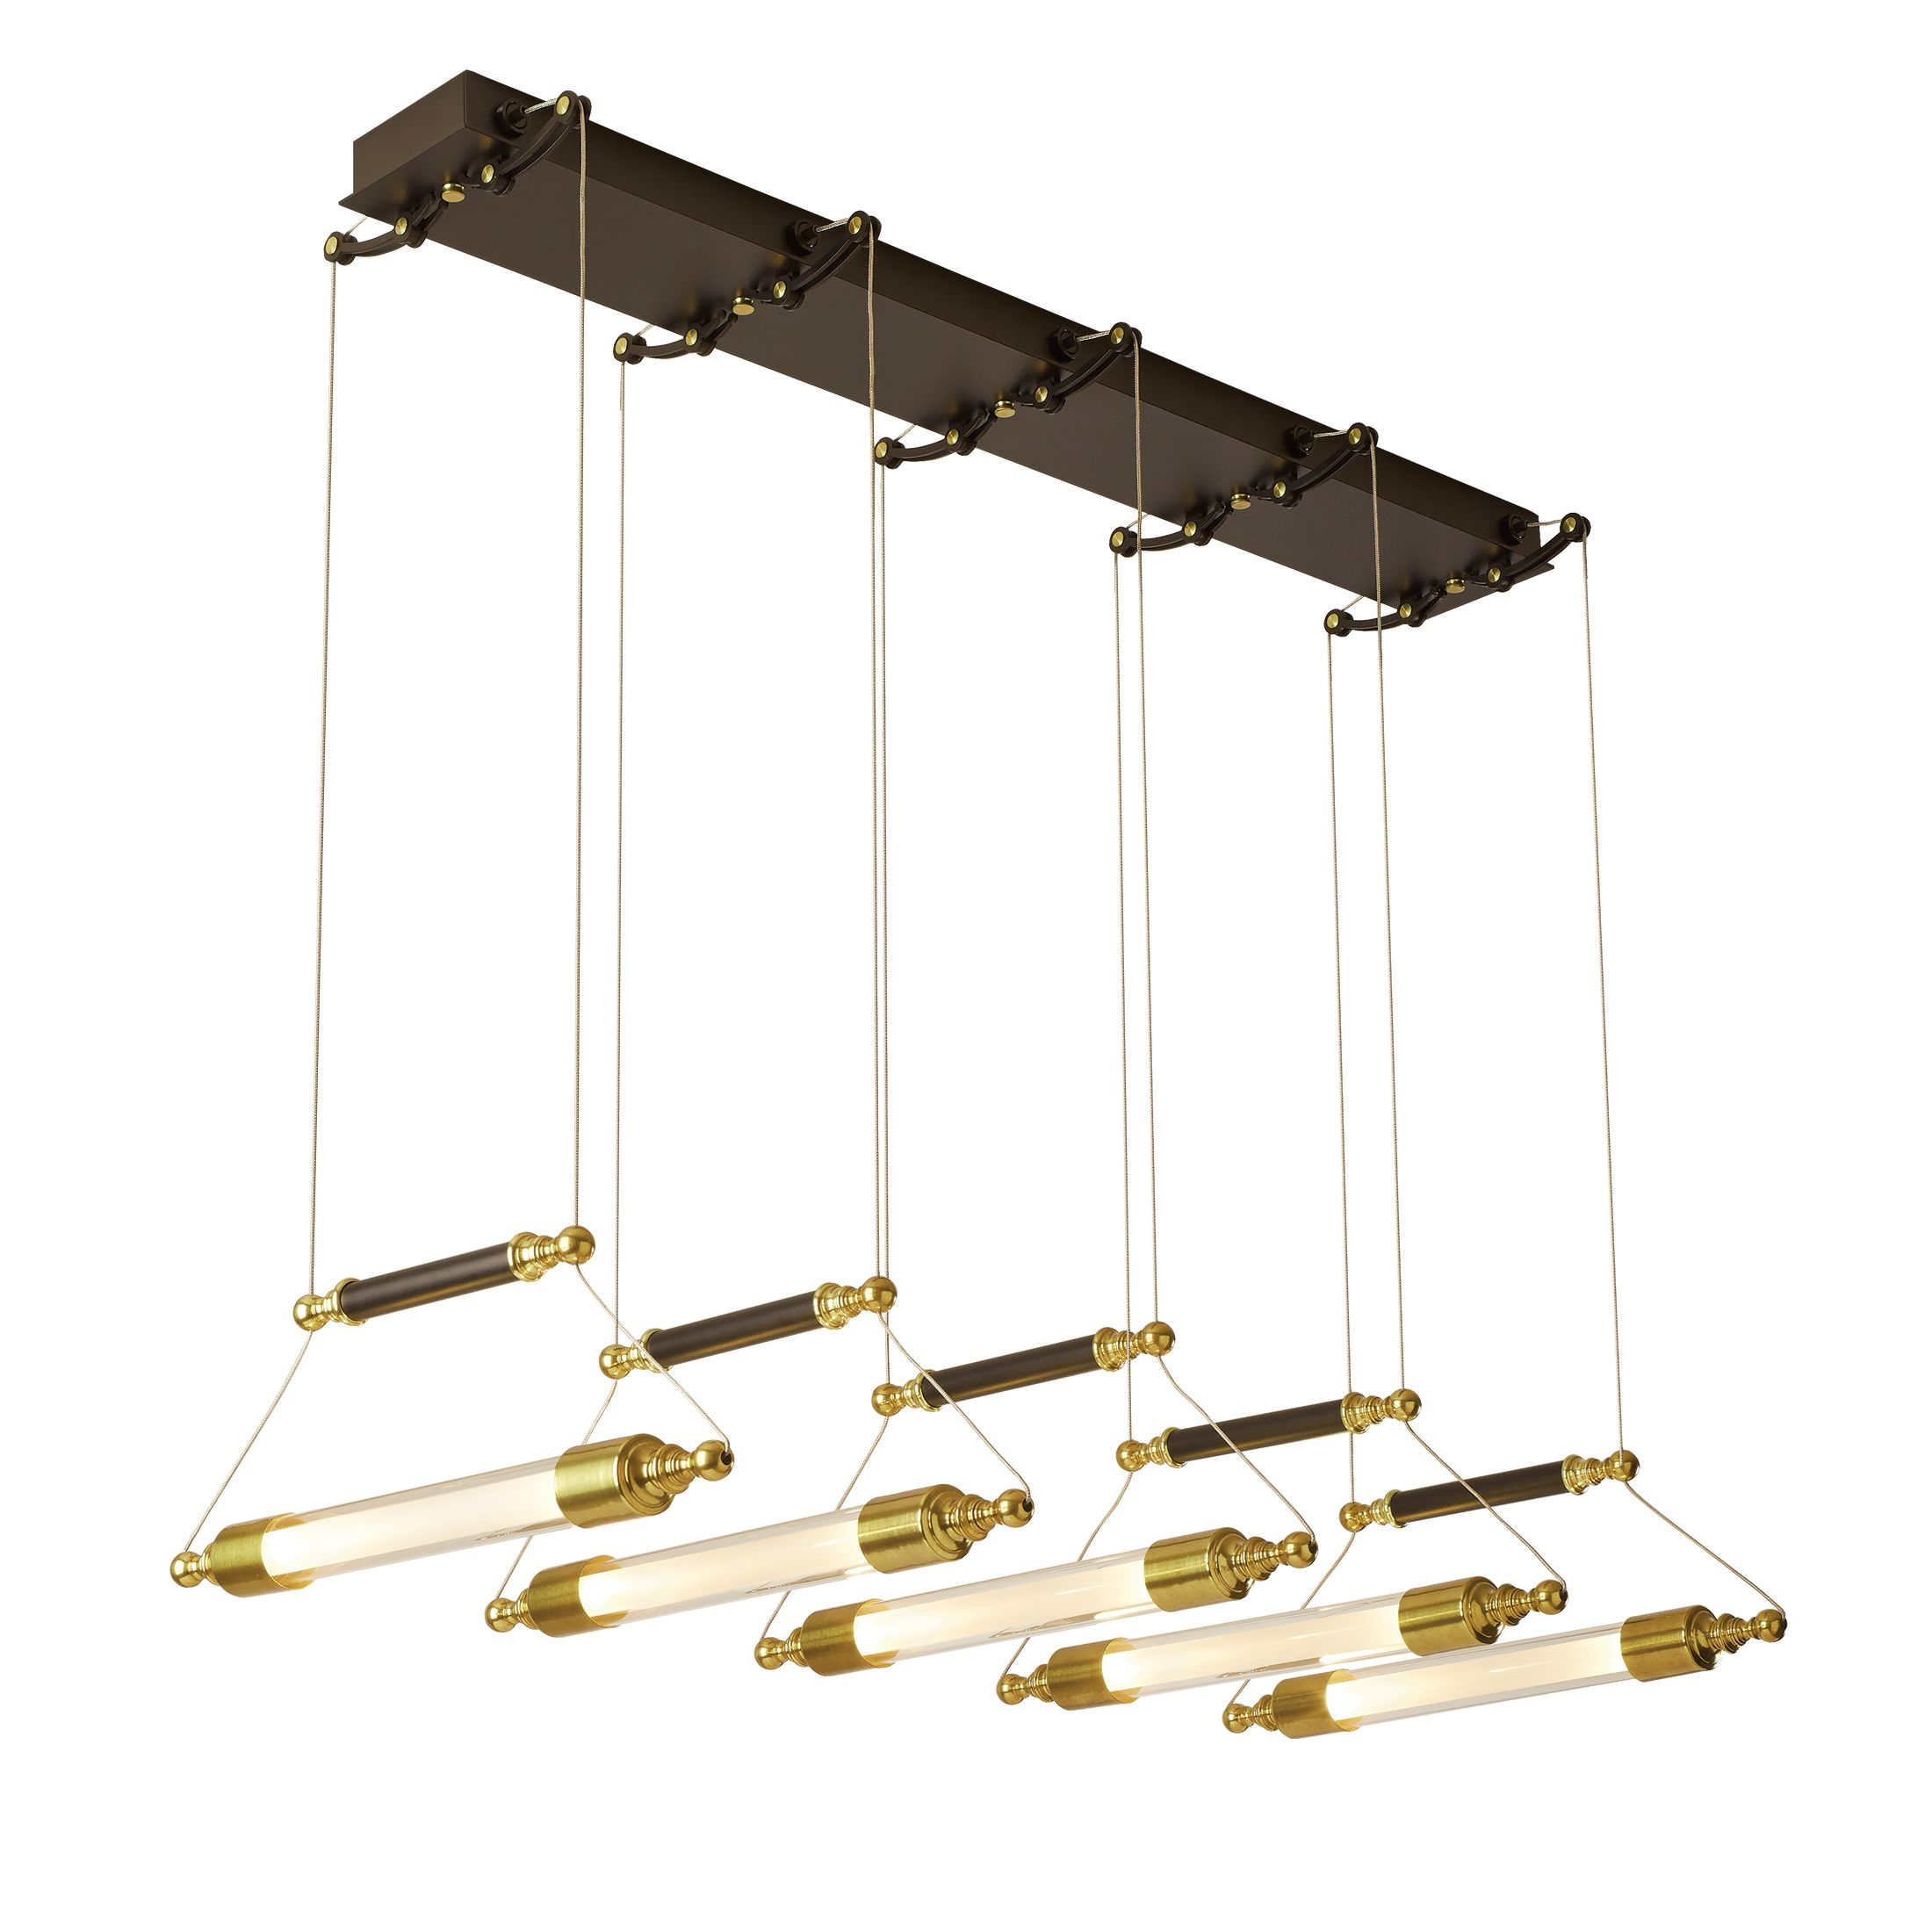 rousseau cluster bronze today shipping free glass overstock pendant brass product valley hudson aged home metal garden light